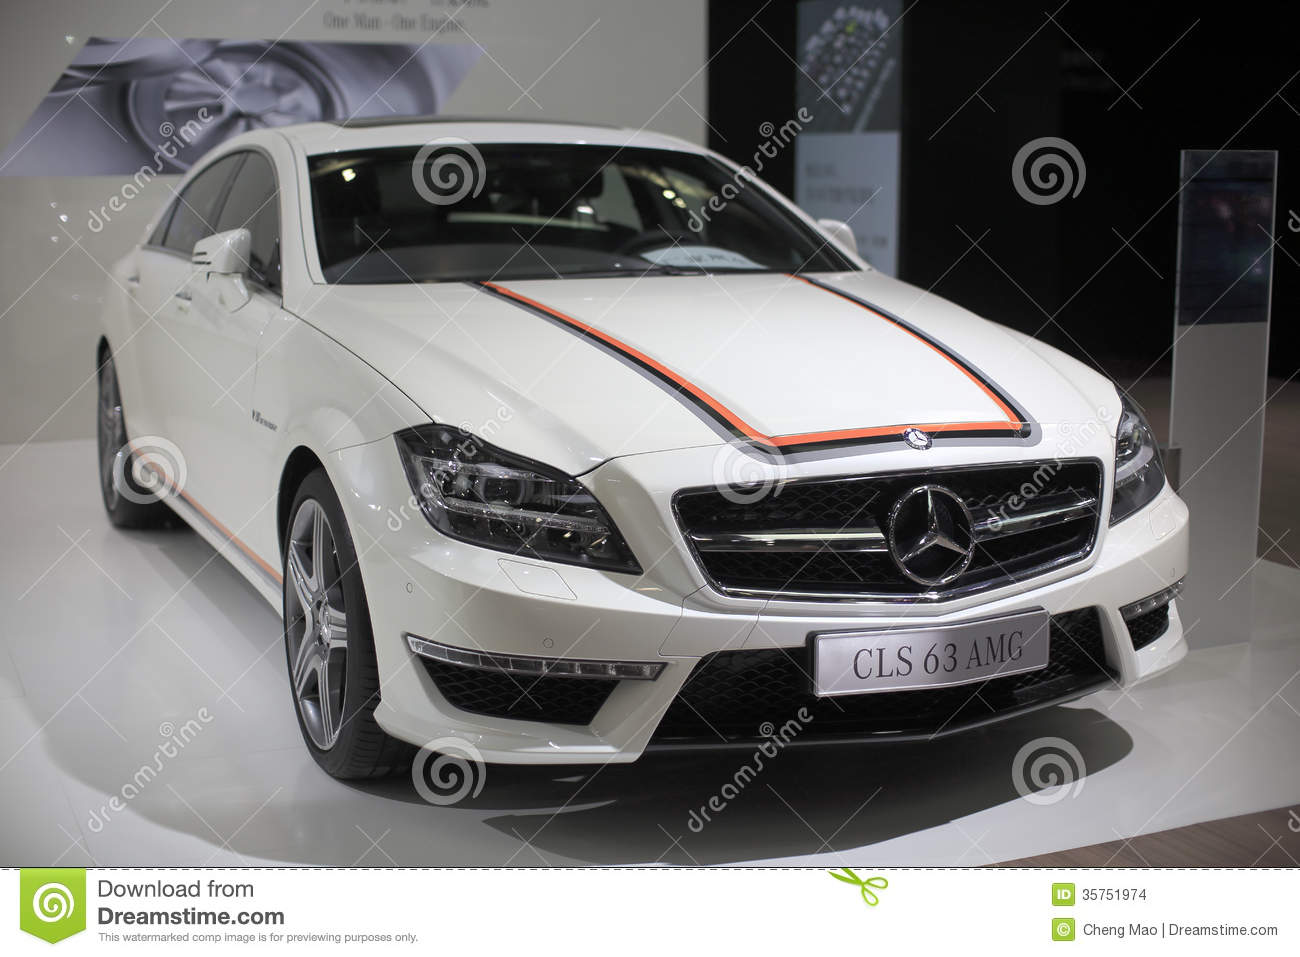 White mercedes benz cls 63 amg car editorial stock image for White mercedes benz truck